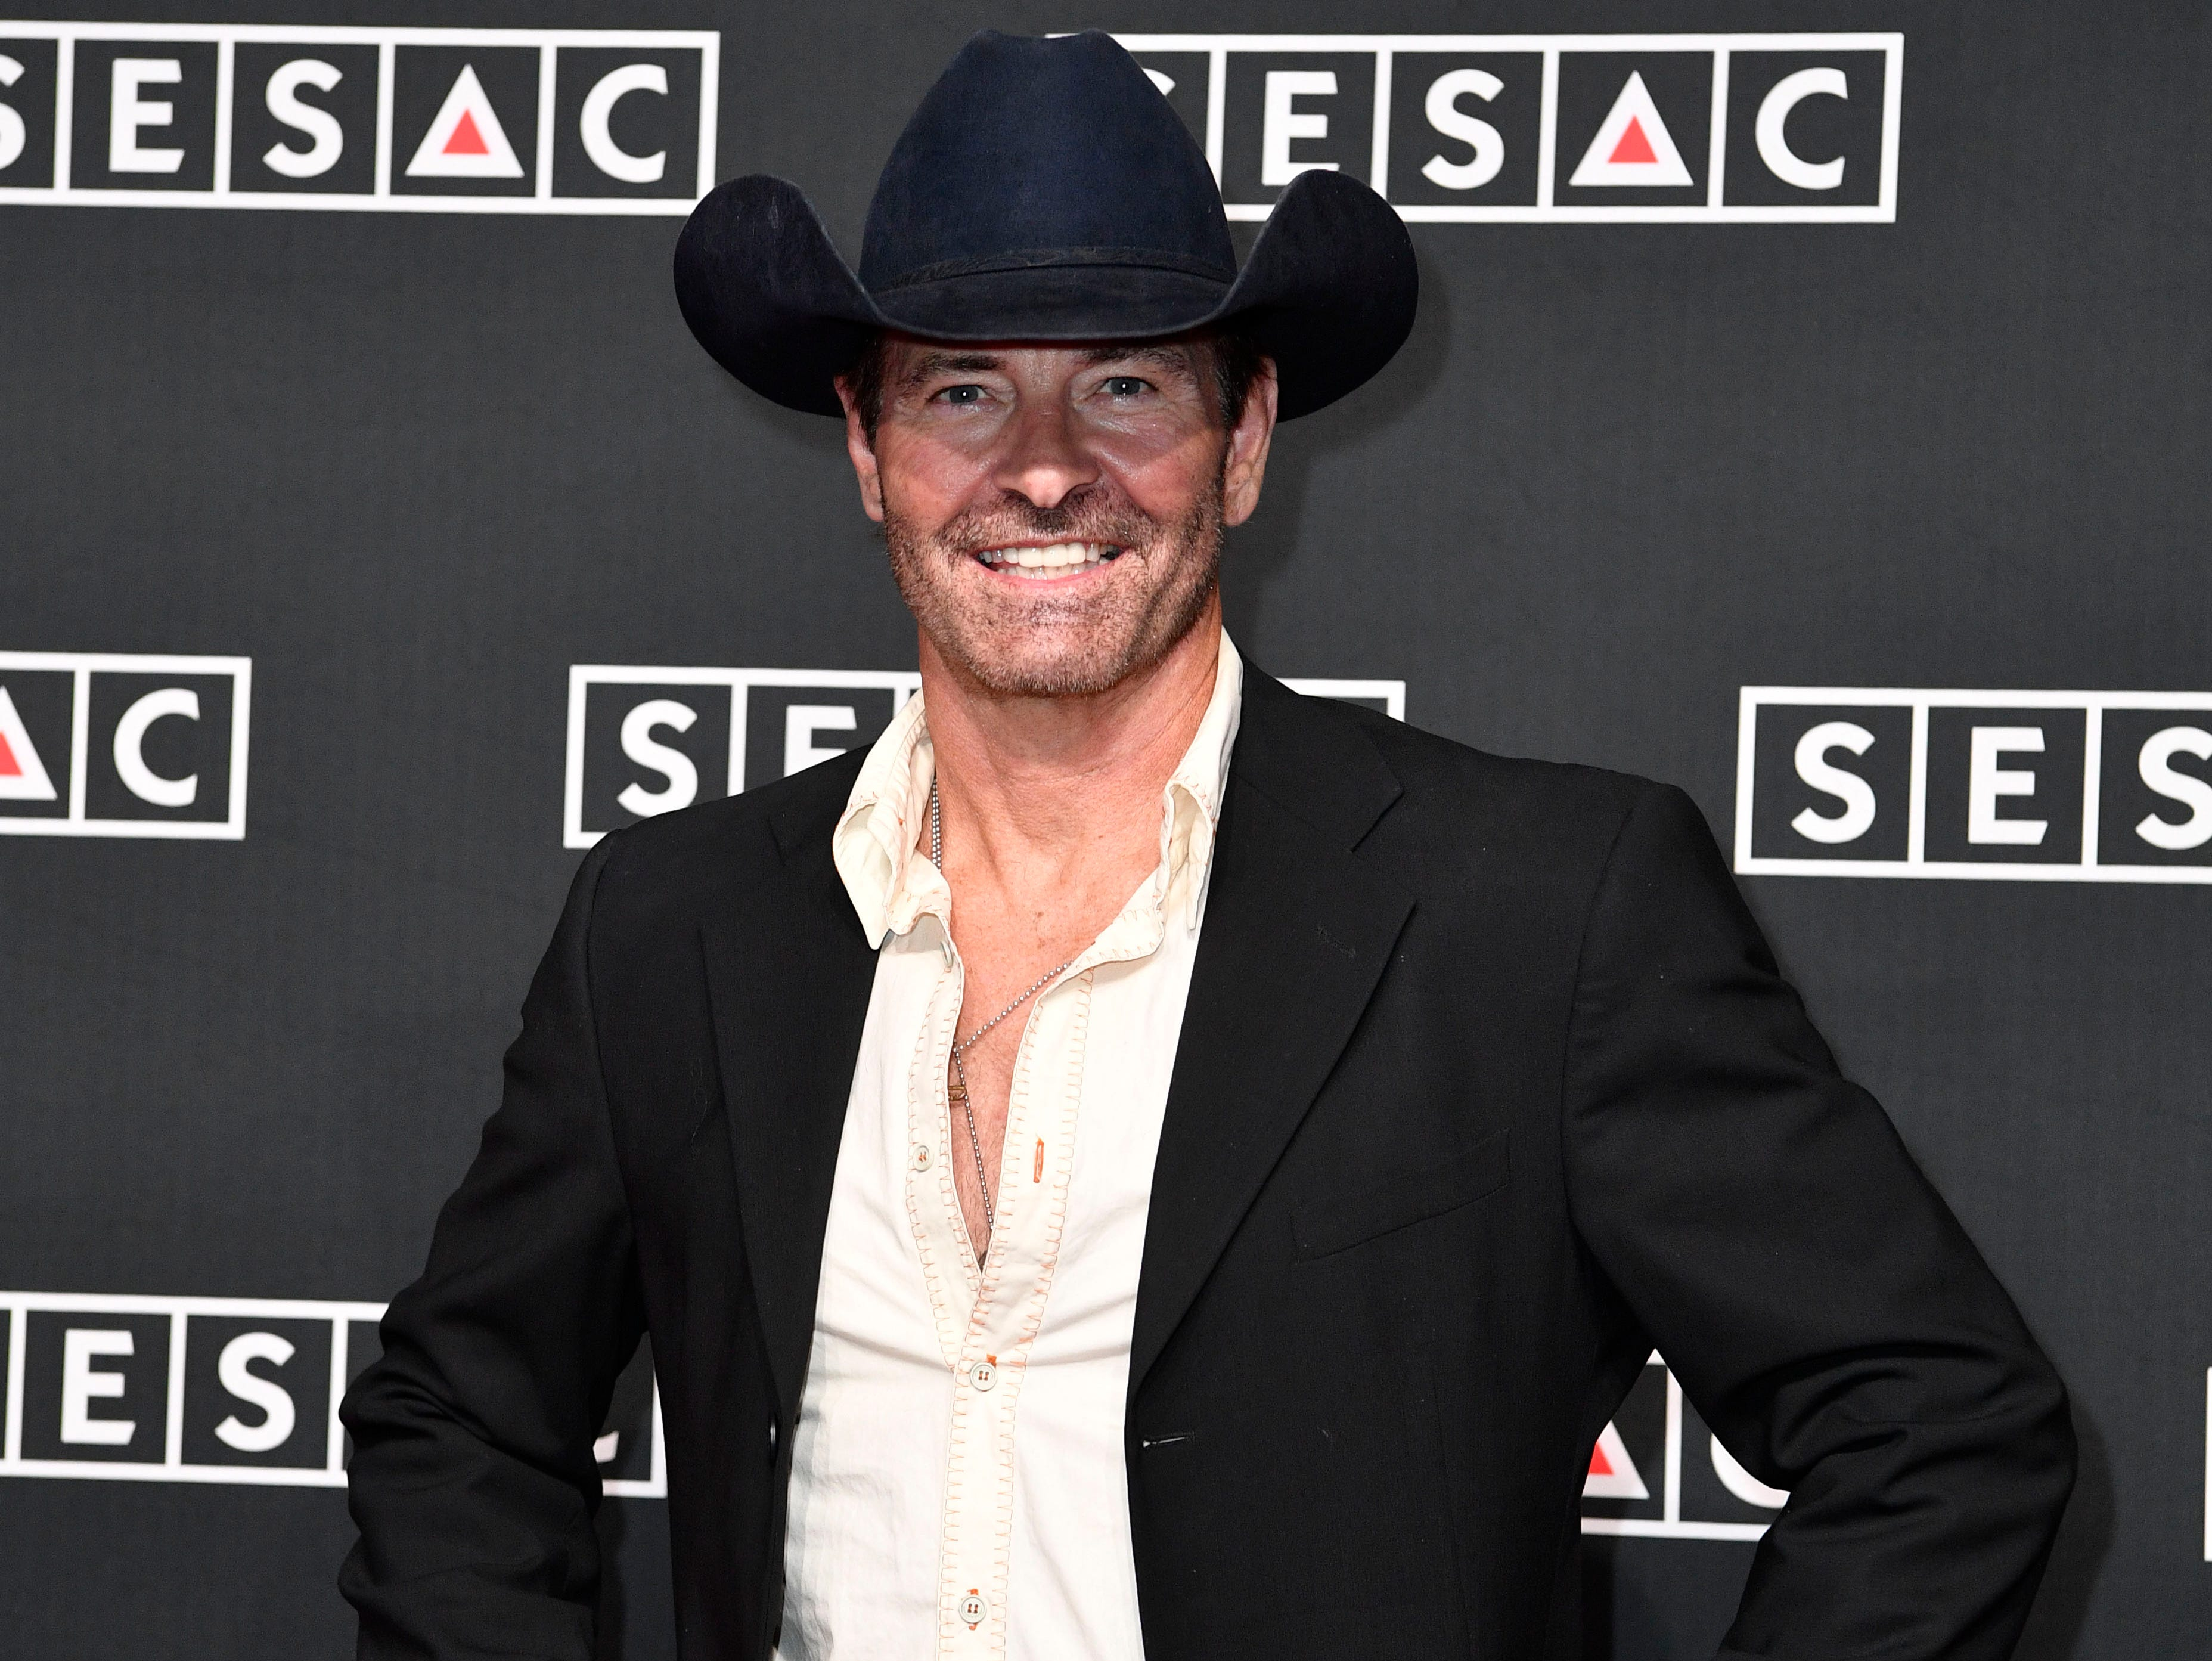 Keith Burns on the red carpet at the SESAC Nashville Music Awards at the Country Music Hall of Fame and Museum Sunday Nov. 11, 2018, in Nashville, Tenn.